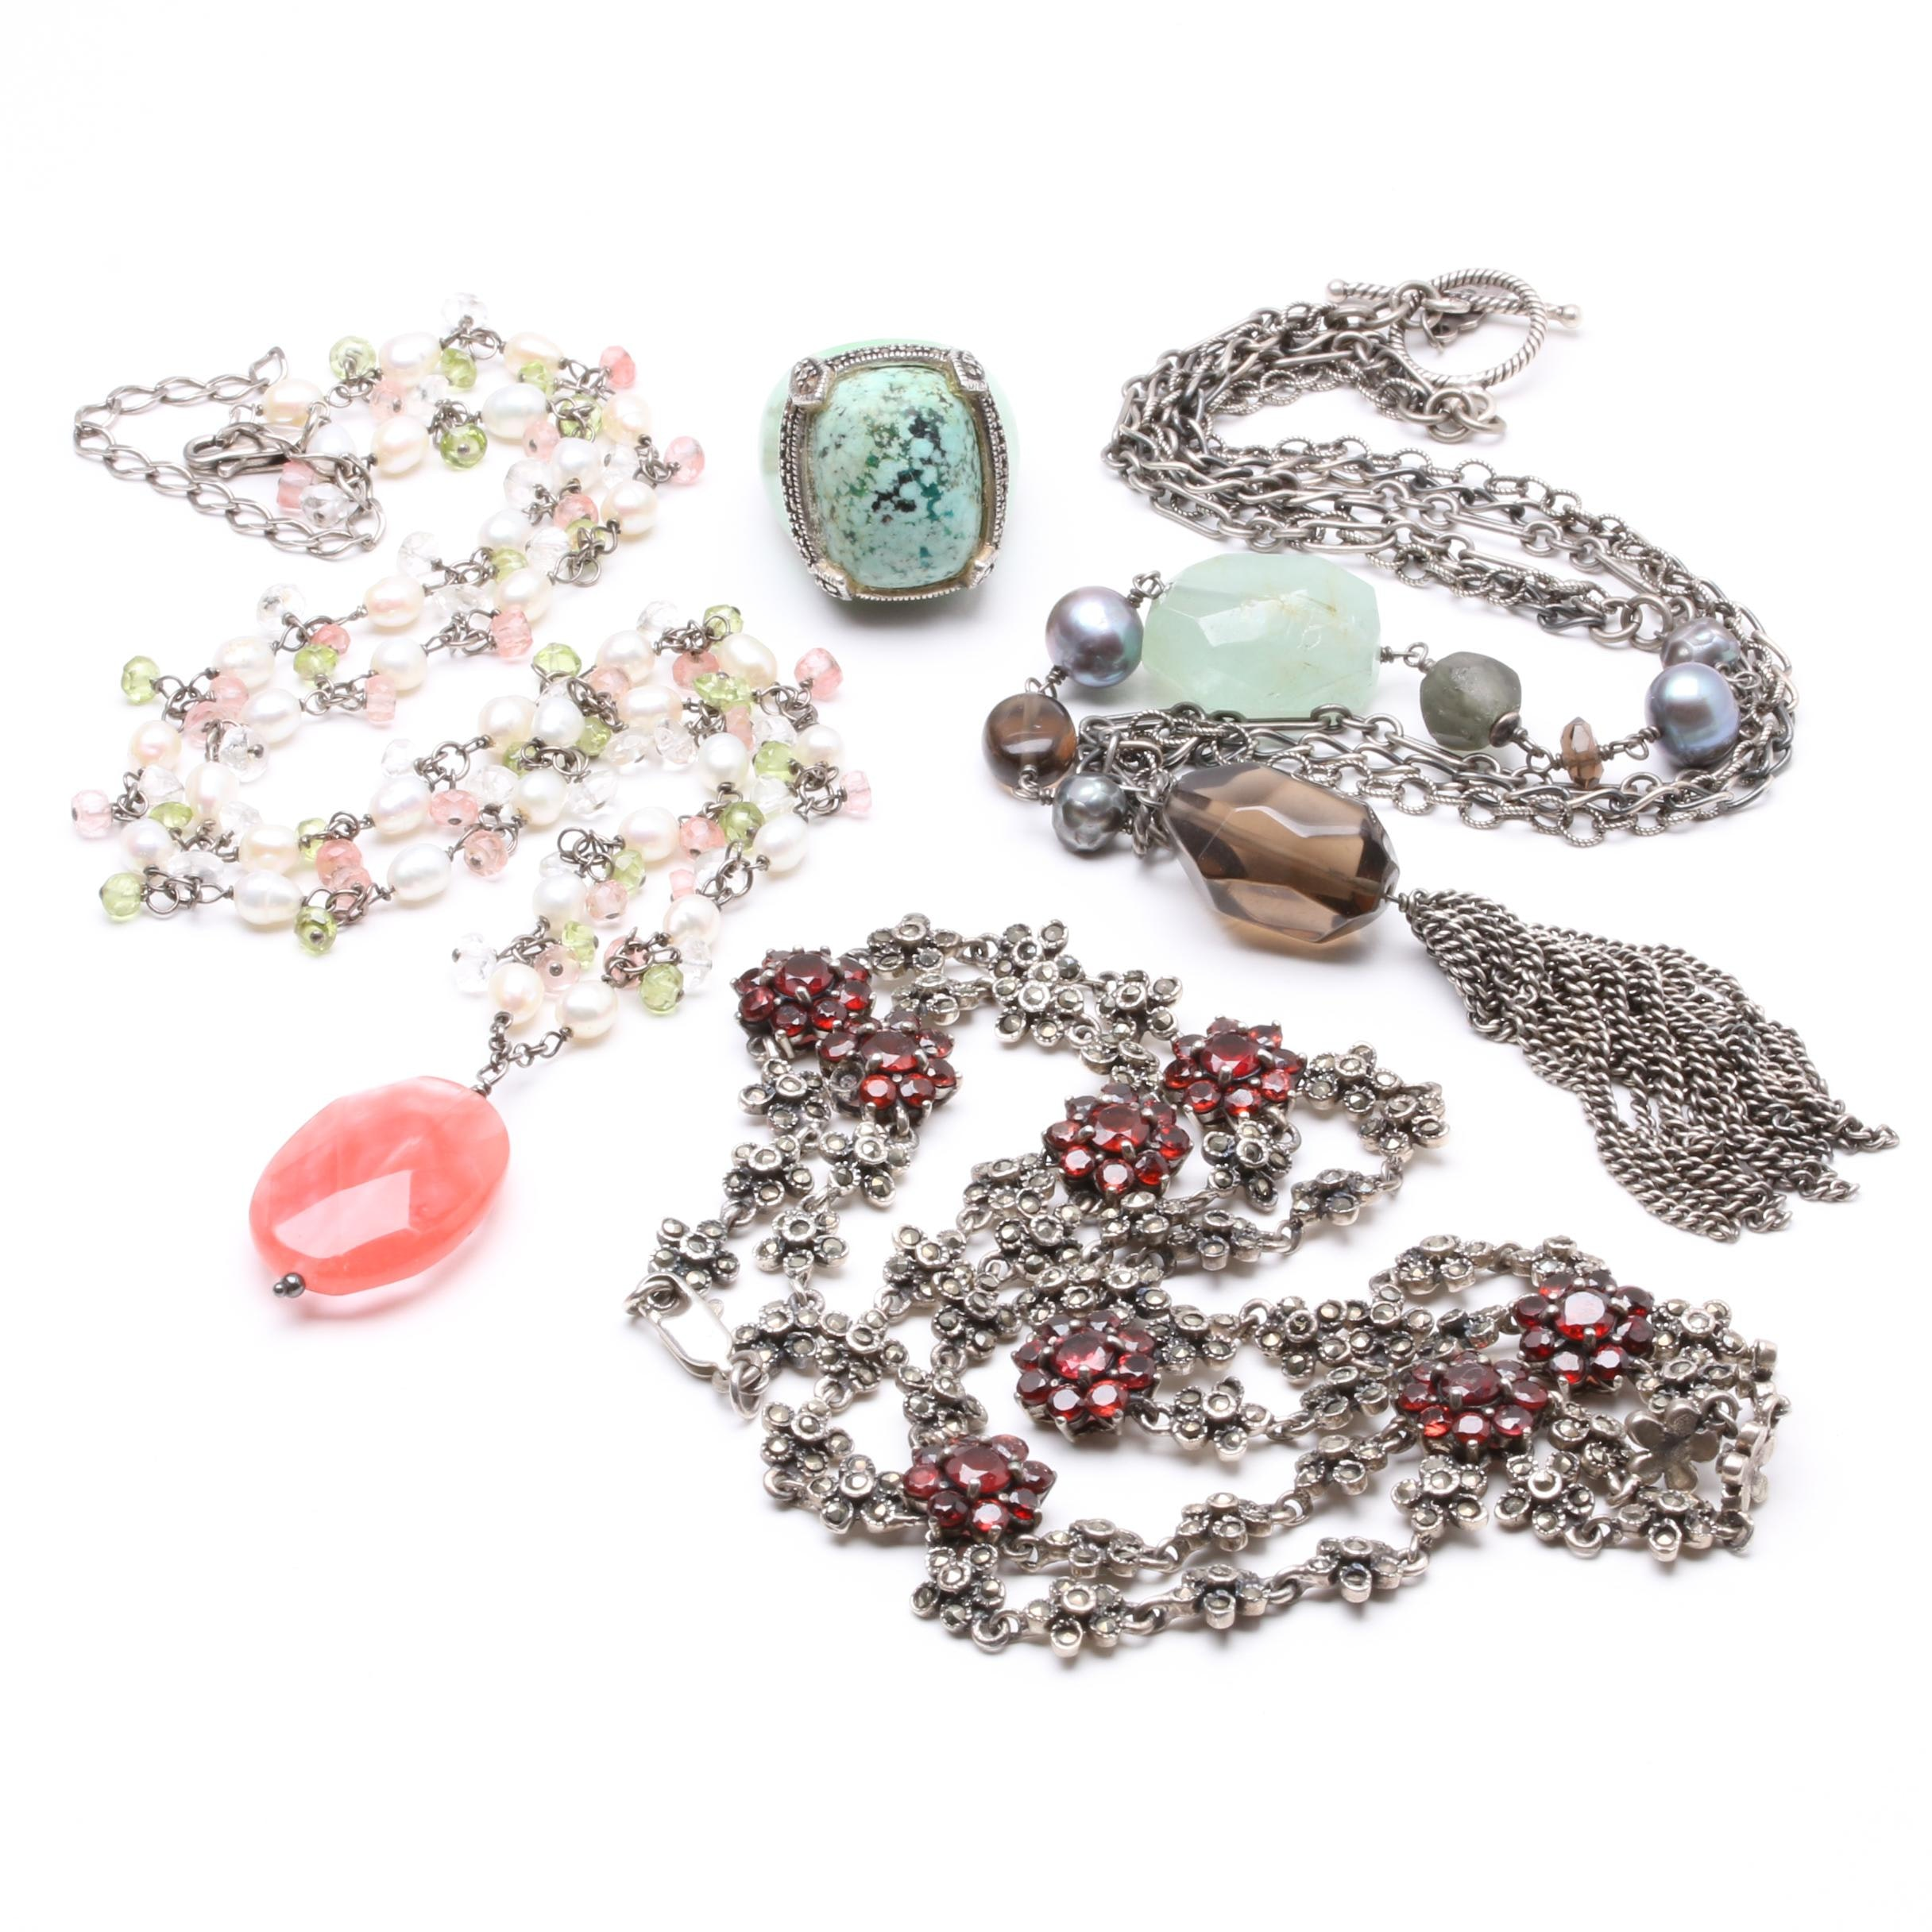 Sterling Silver Garnet, Smoky Quartz and Prehnite Necklaces and a Ring